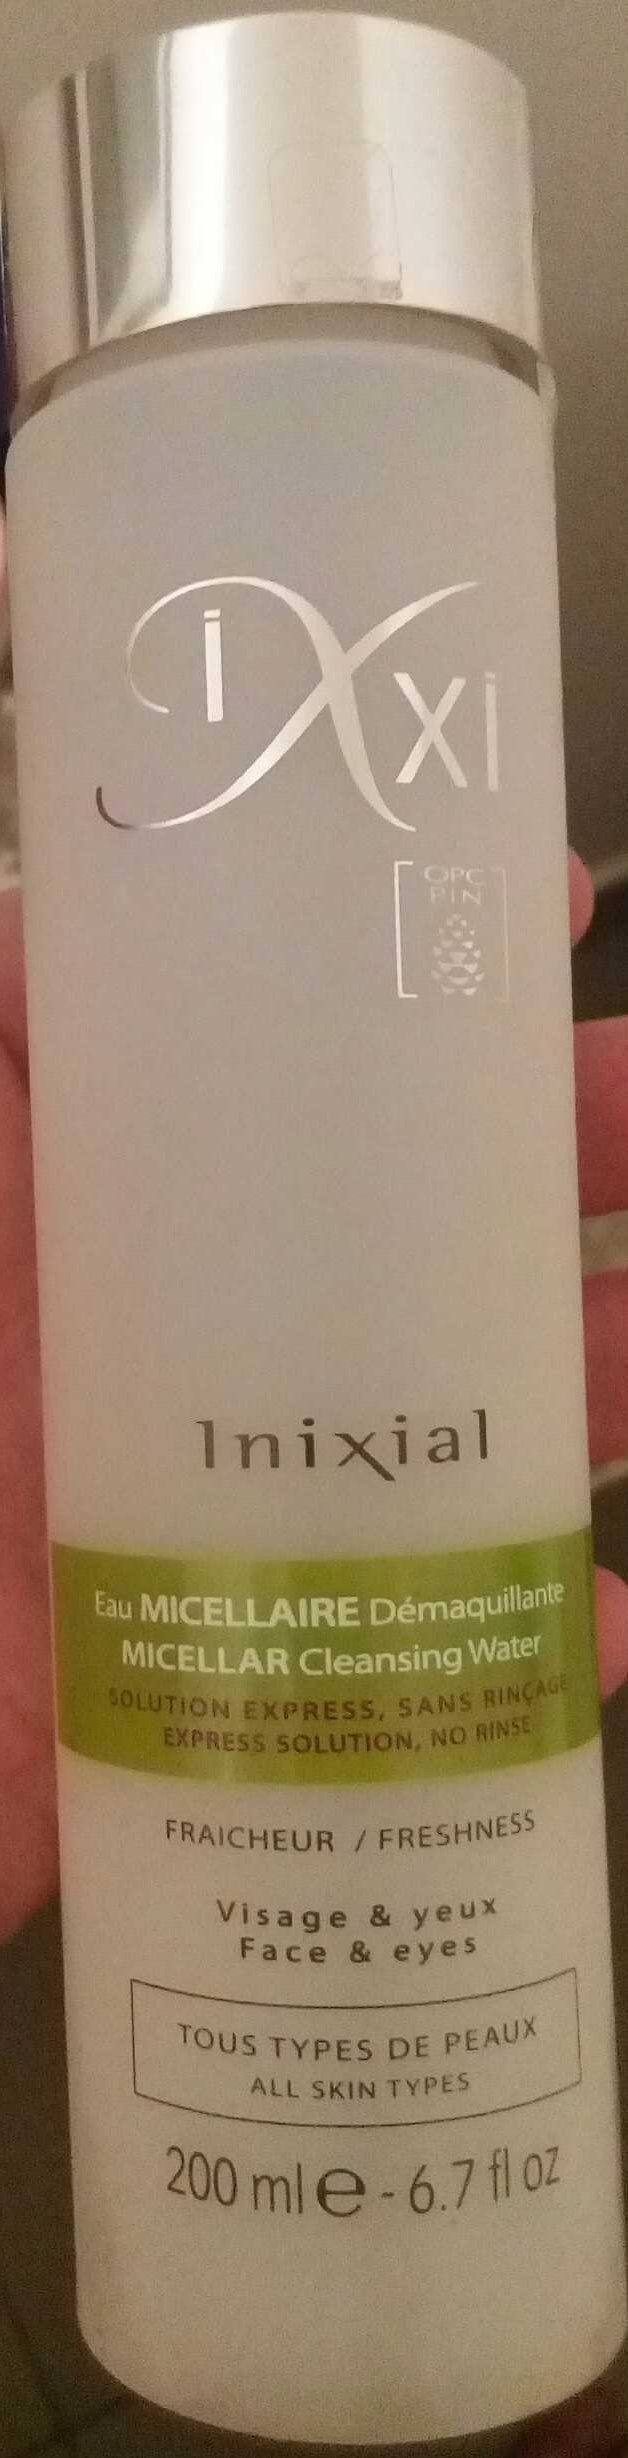 Inixial eau micellaire démaquillante - Product